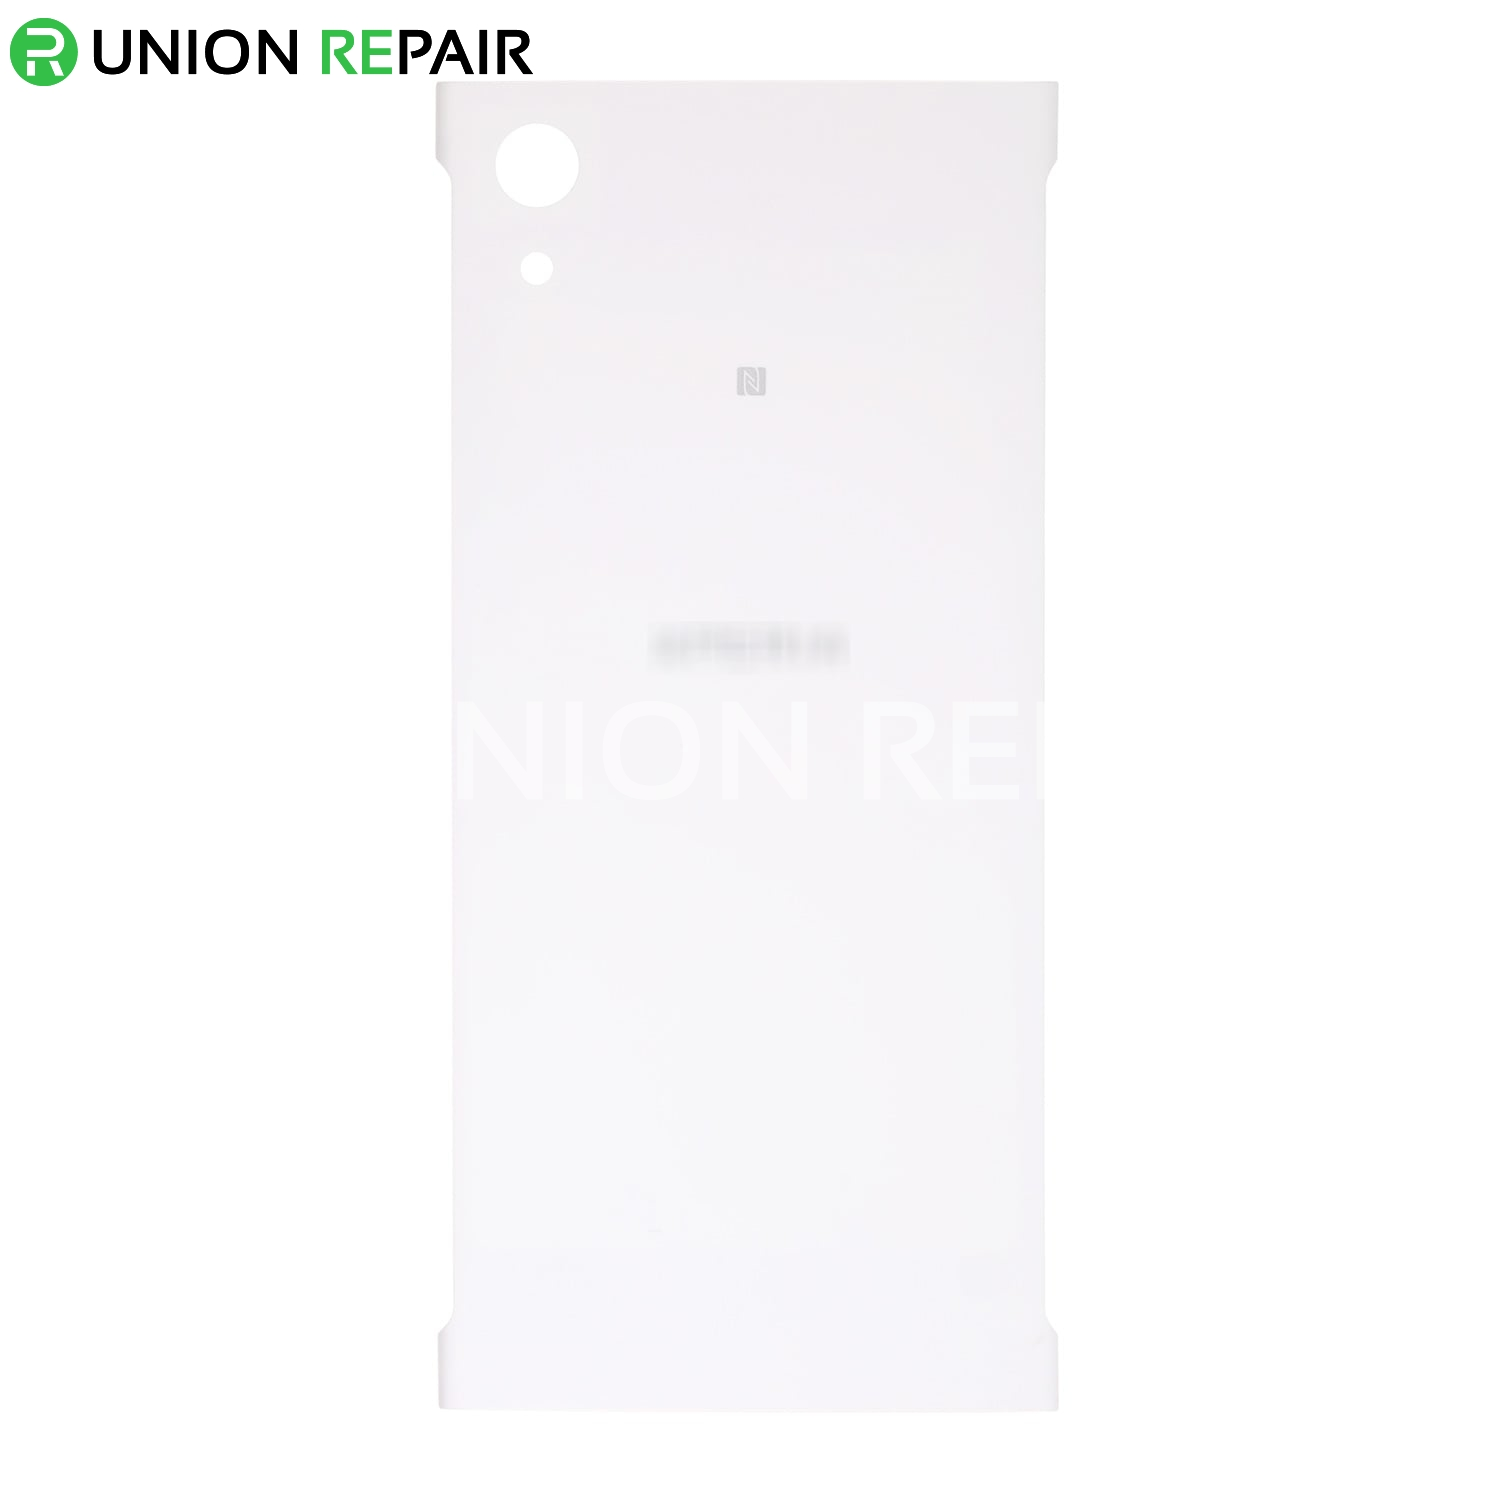 Replacement for Sony Xperia XA1 Battery Door - White